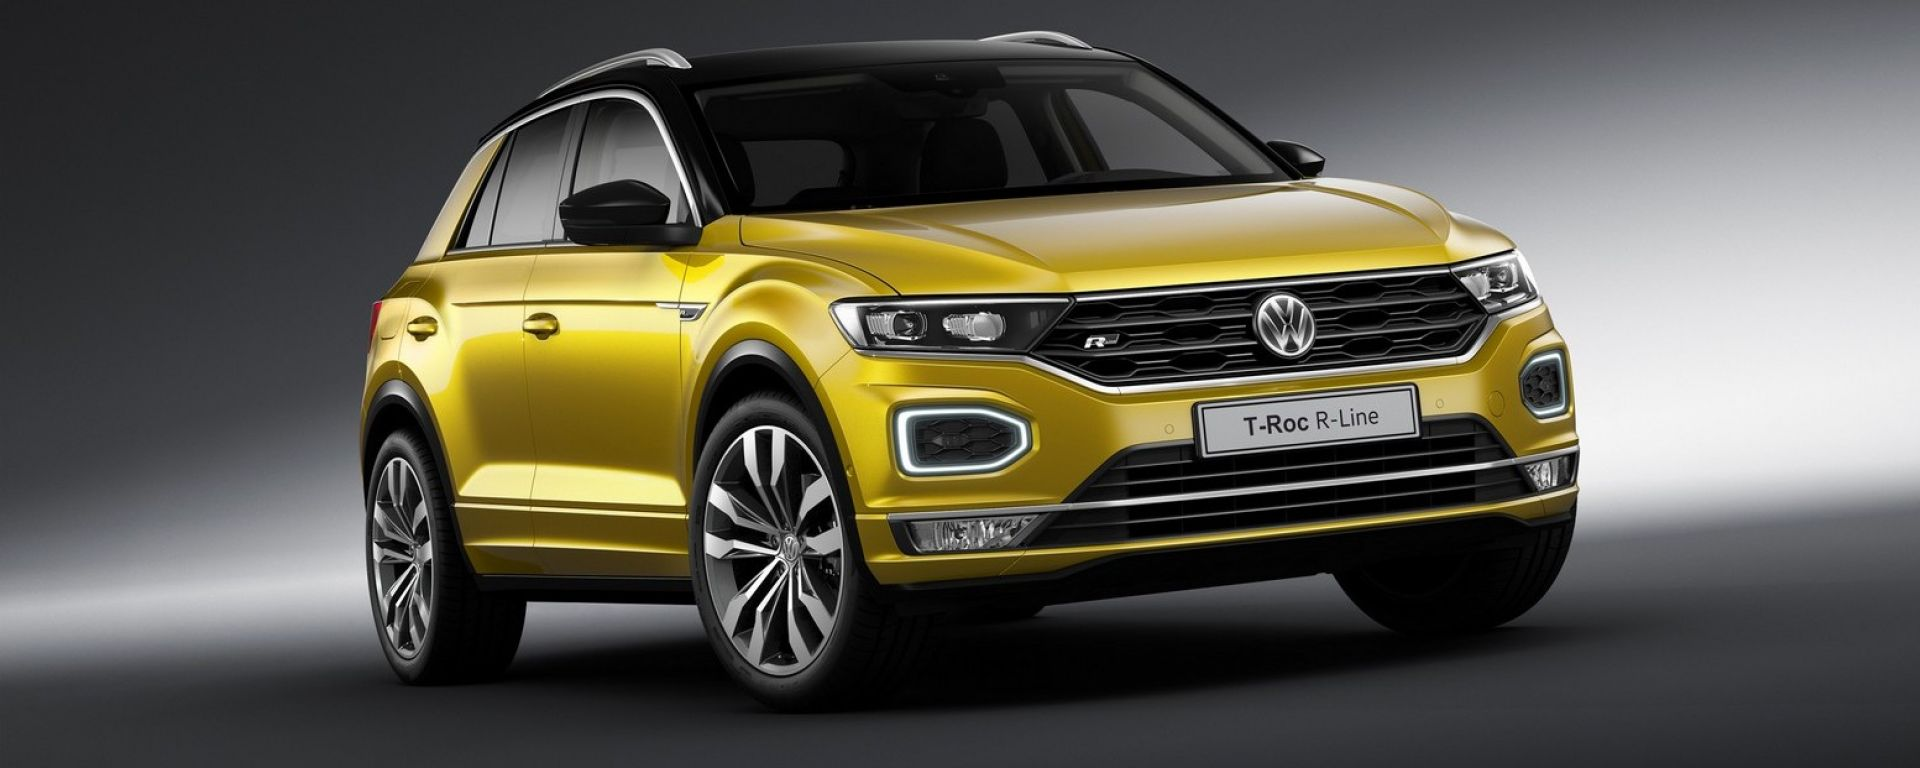 volkswagen t roc r line uscita prezzo caratteristiche motori motorbox. Black Bedroom Furniture Sets. Home Design Ideas